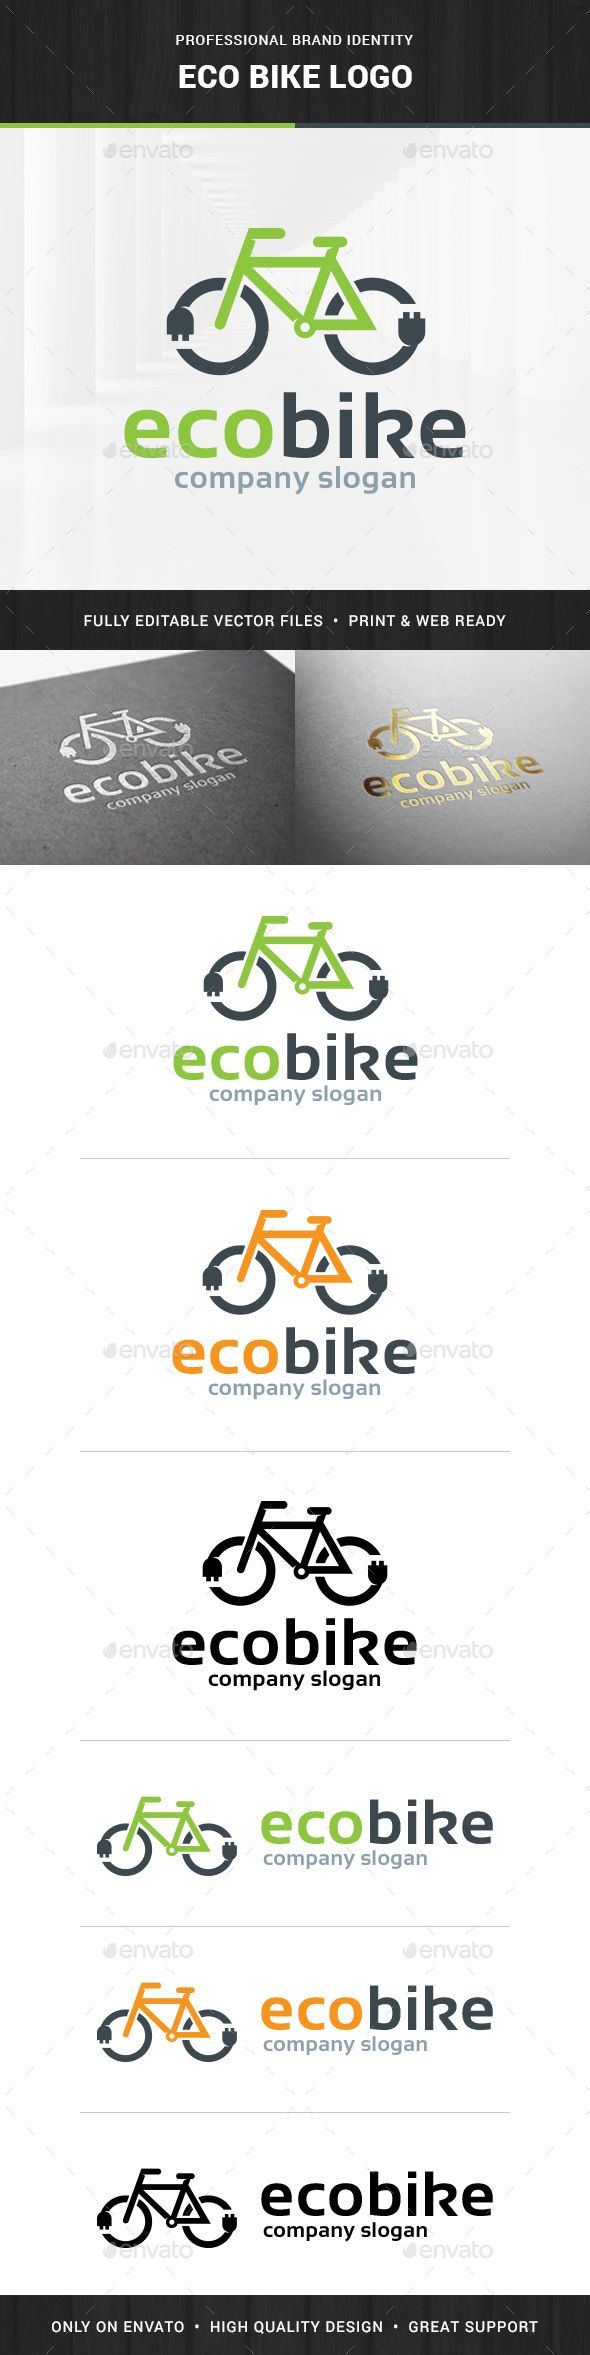 Eco Bike  - Logo Design Template Vector #logotype Download it here: http://graphicriver.net/item/eco-bike-logo-template/13476227?s_rank=667?ref=nexion